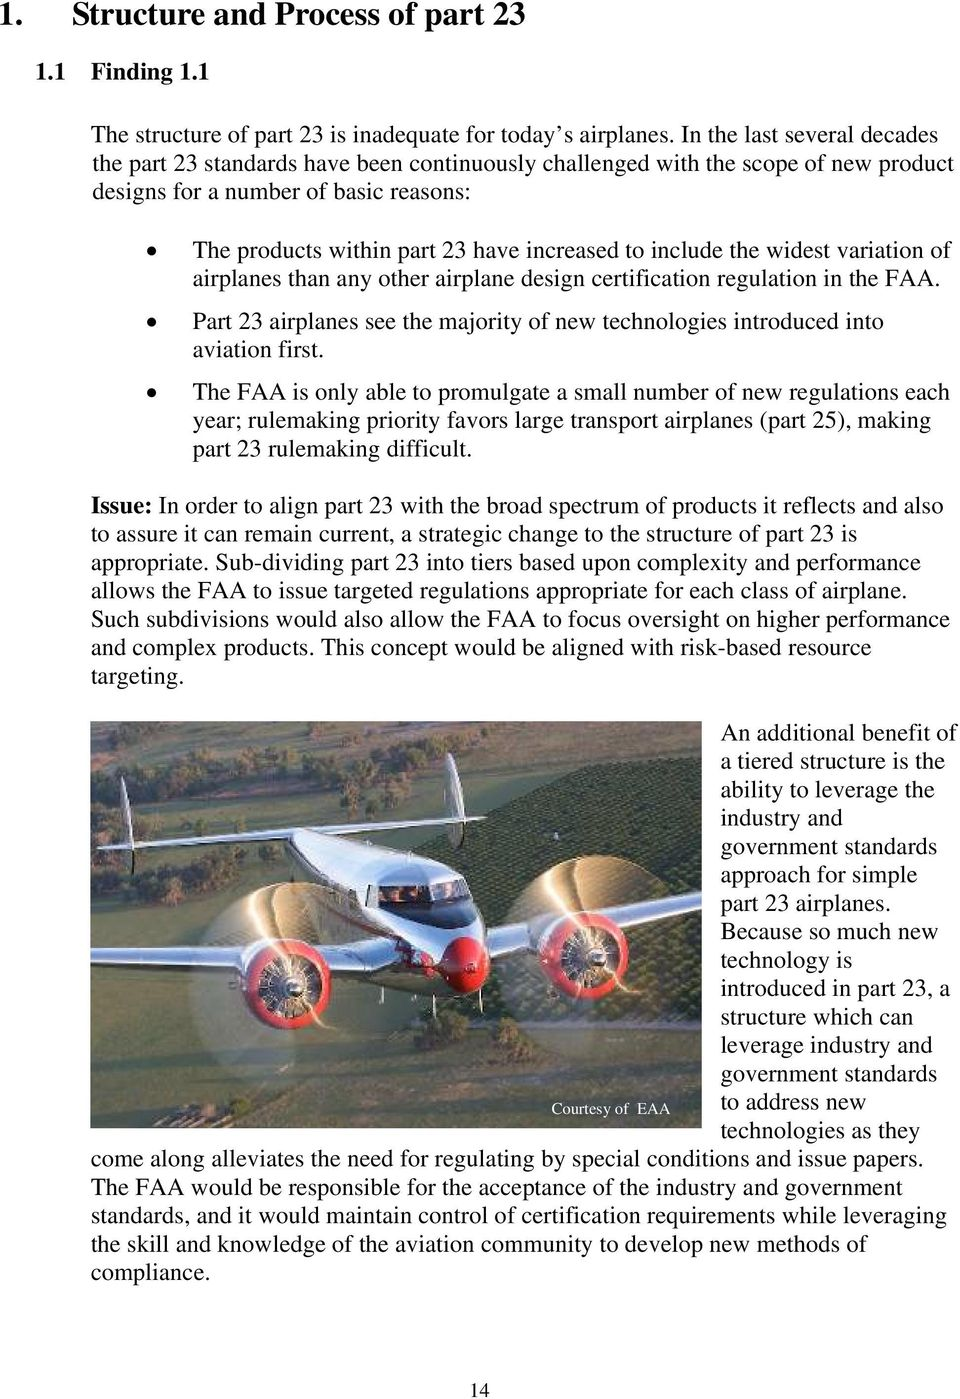 include the widest variation of airplanes than any other airplane design certification regulation in the FAA. Part 23 airplanes see the majority of new technologies introduced into aviation first.